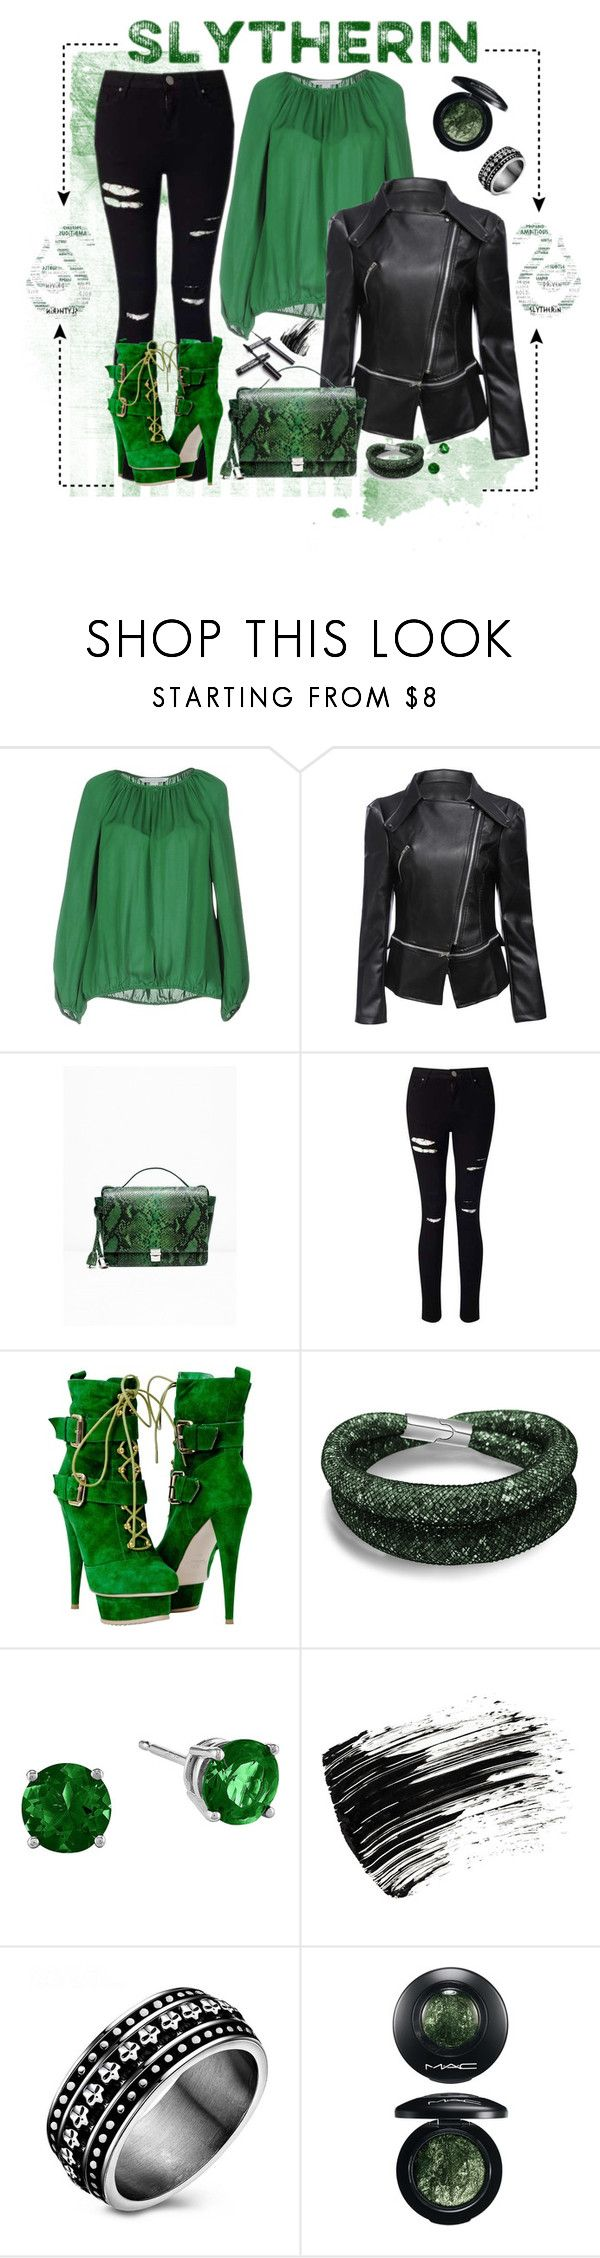 """Slytherin"" by loveisintheairdesigns ❤ liked on Polyvore featuring Diane Von Furstenberg, Zadig & Voltaire, Miss Selfridge, Marc Jacobs, MAC Cosmetics and slytherin"